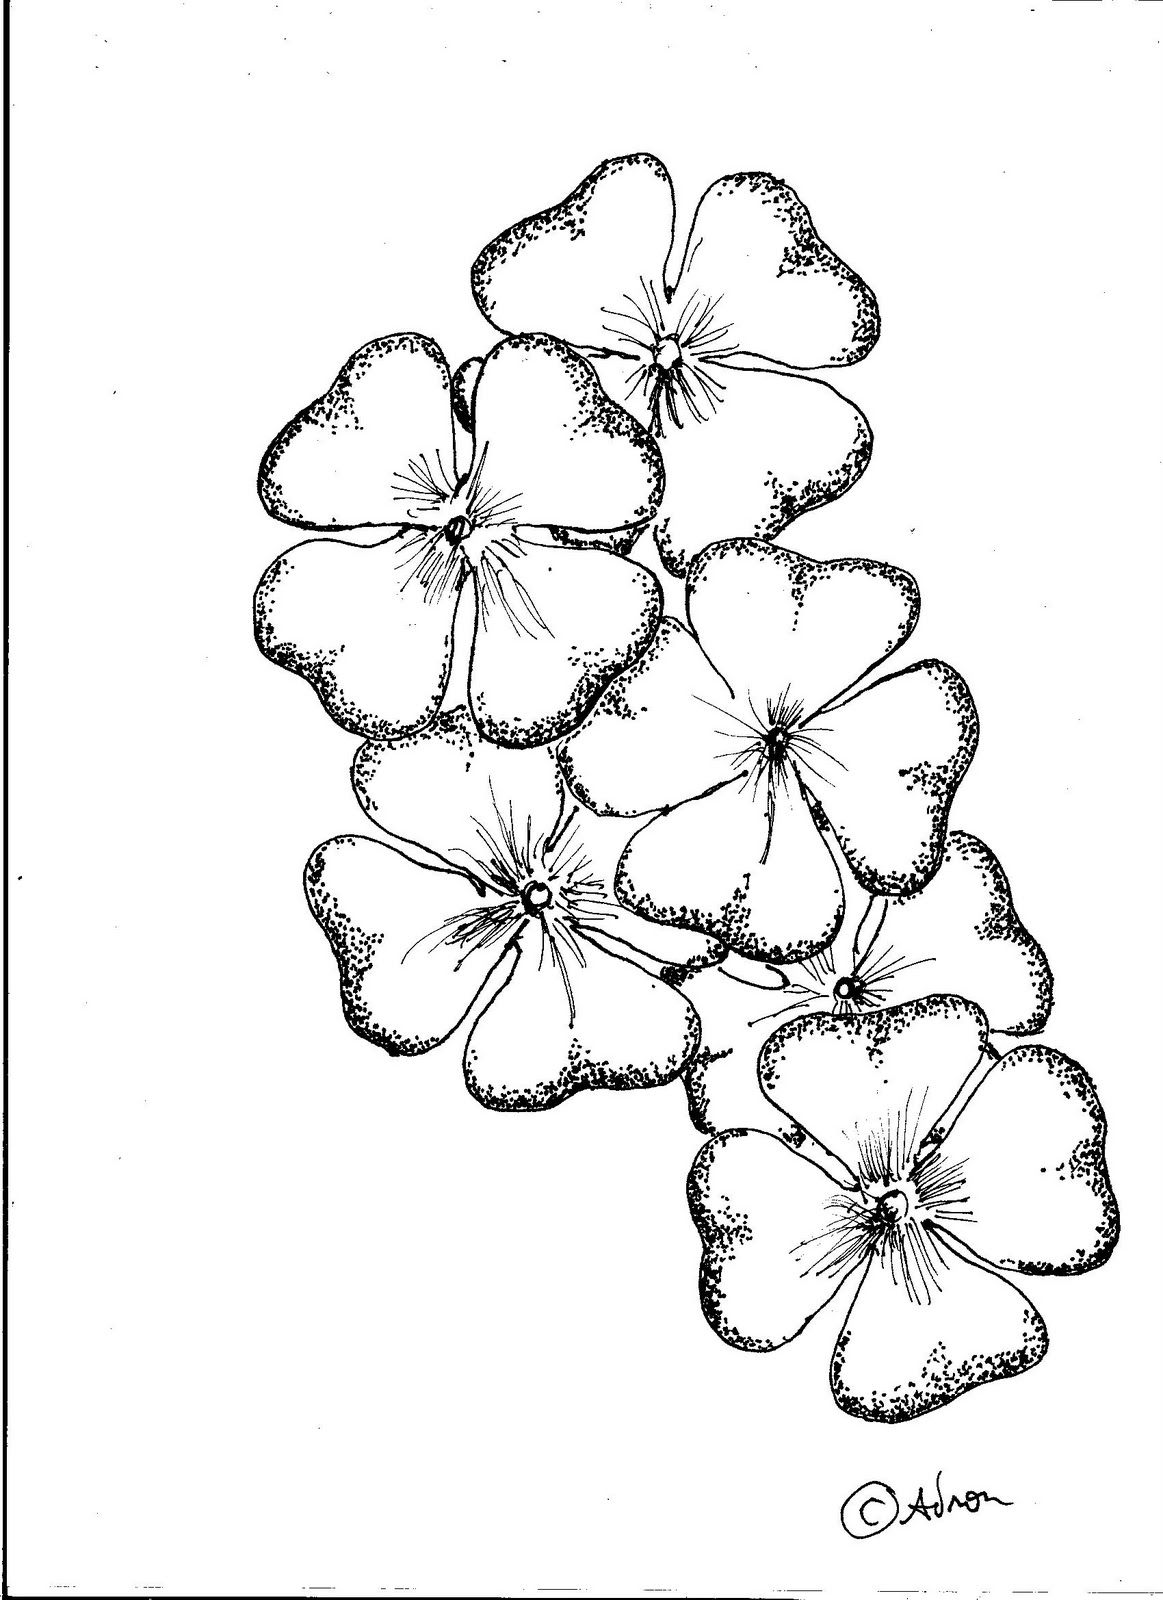 clover drawings leaf clover lesson this free drawing worksheet how to draw